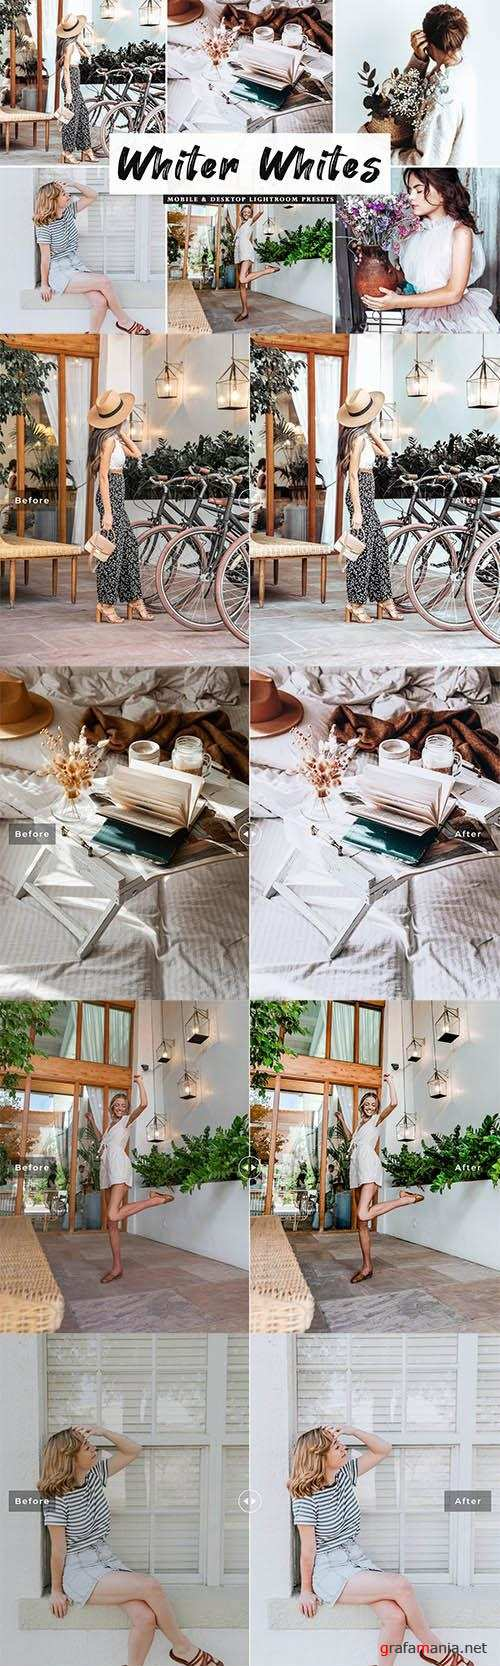 Whiter Whites Lightroom Presets Pack - Mobile & Desktop